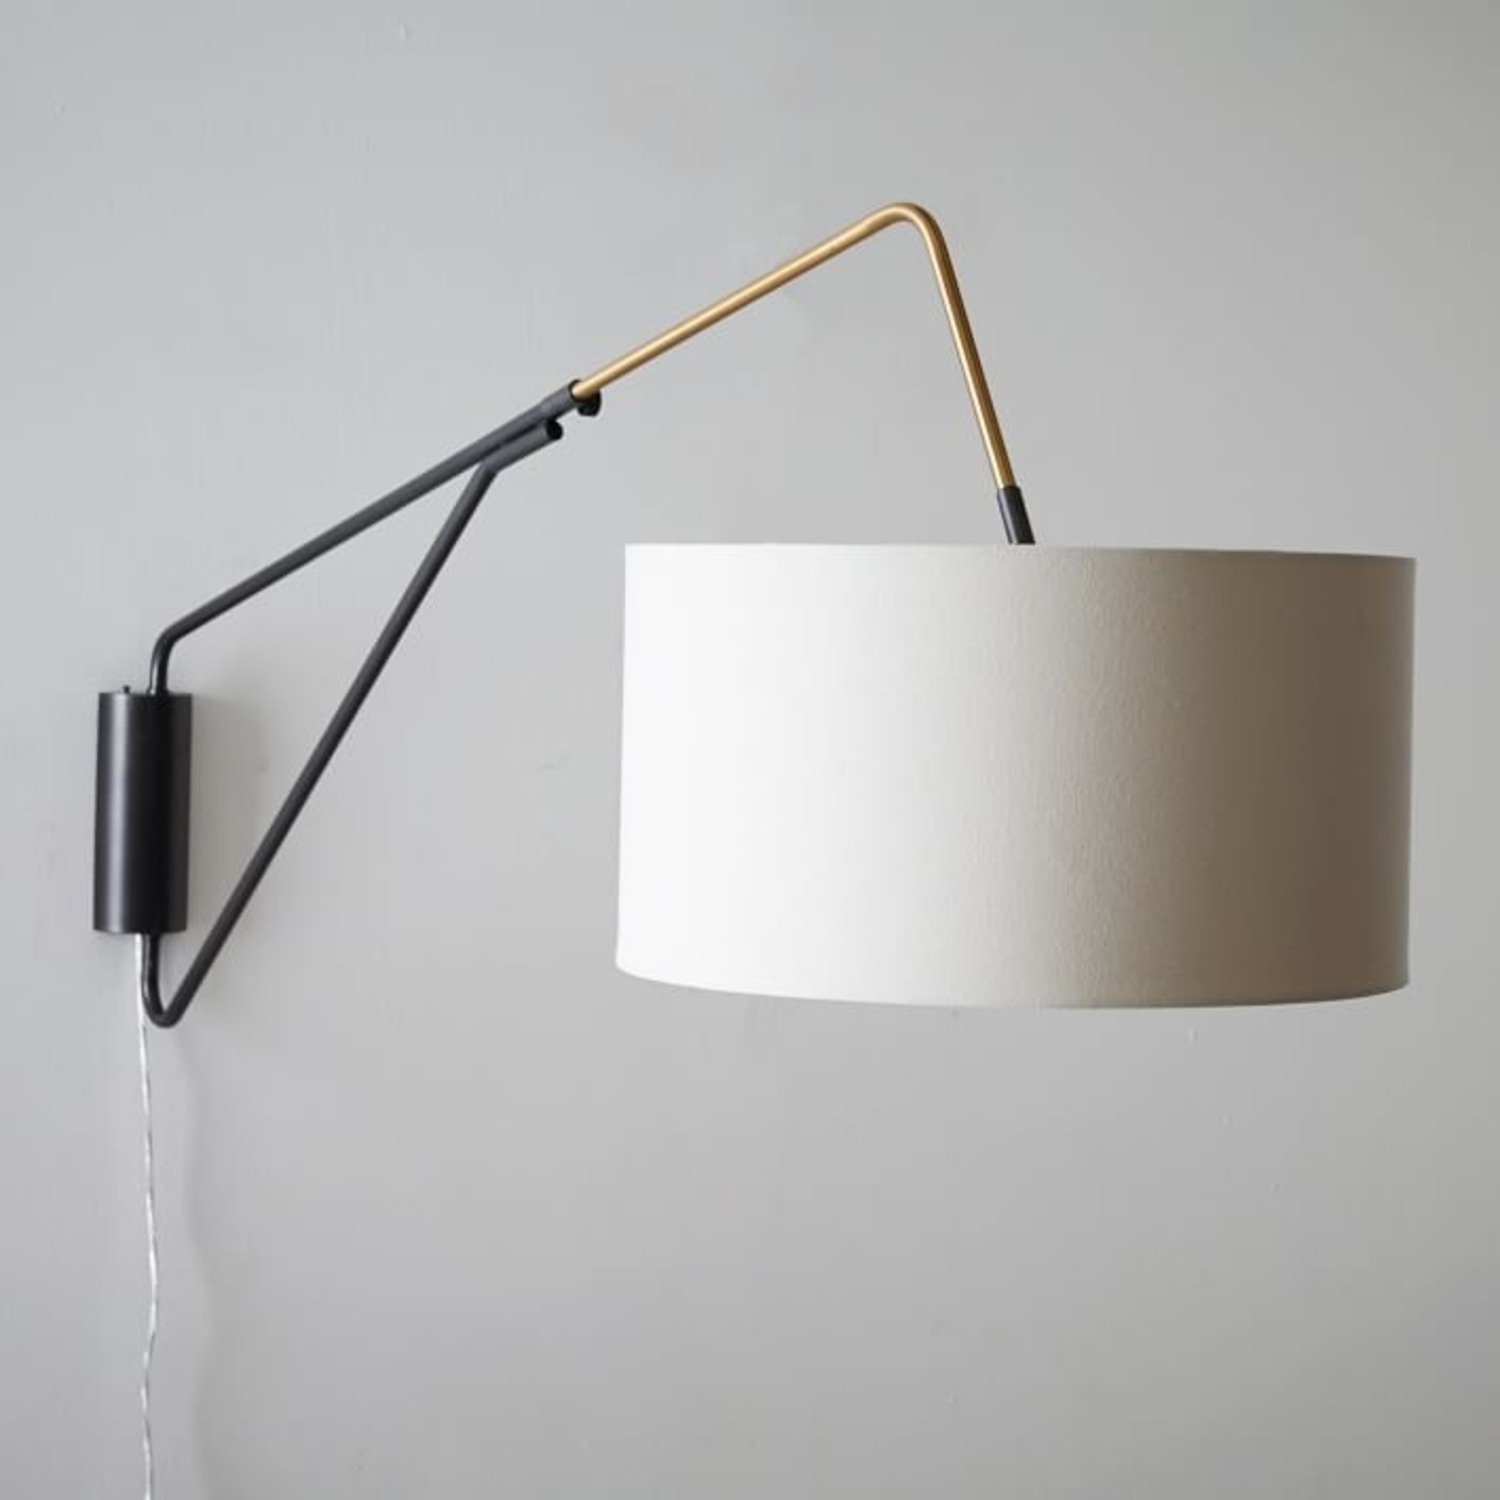 West Elm Overarching Mid-Century Sconce - image-1